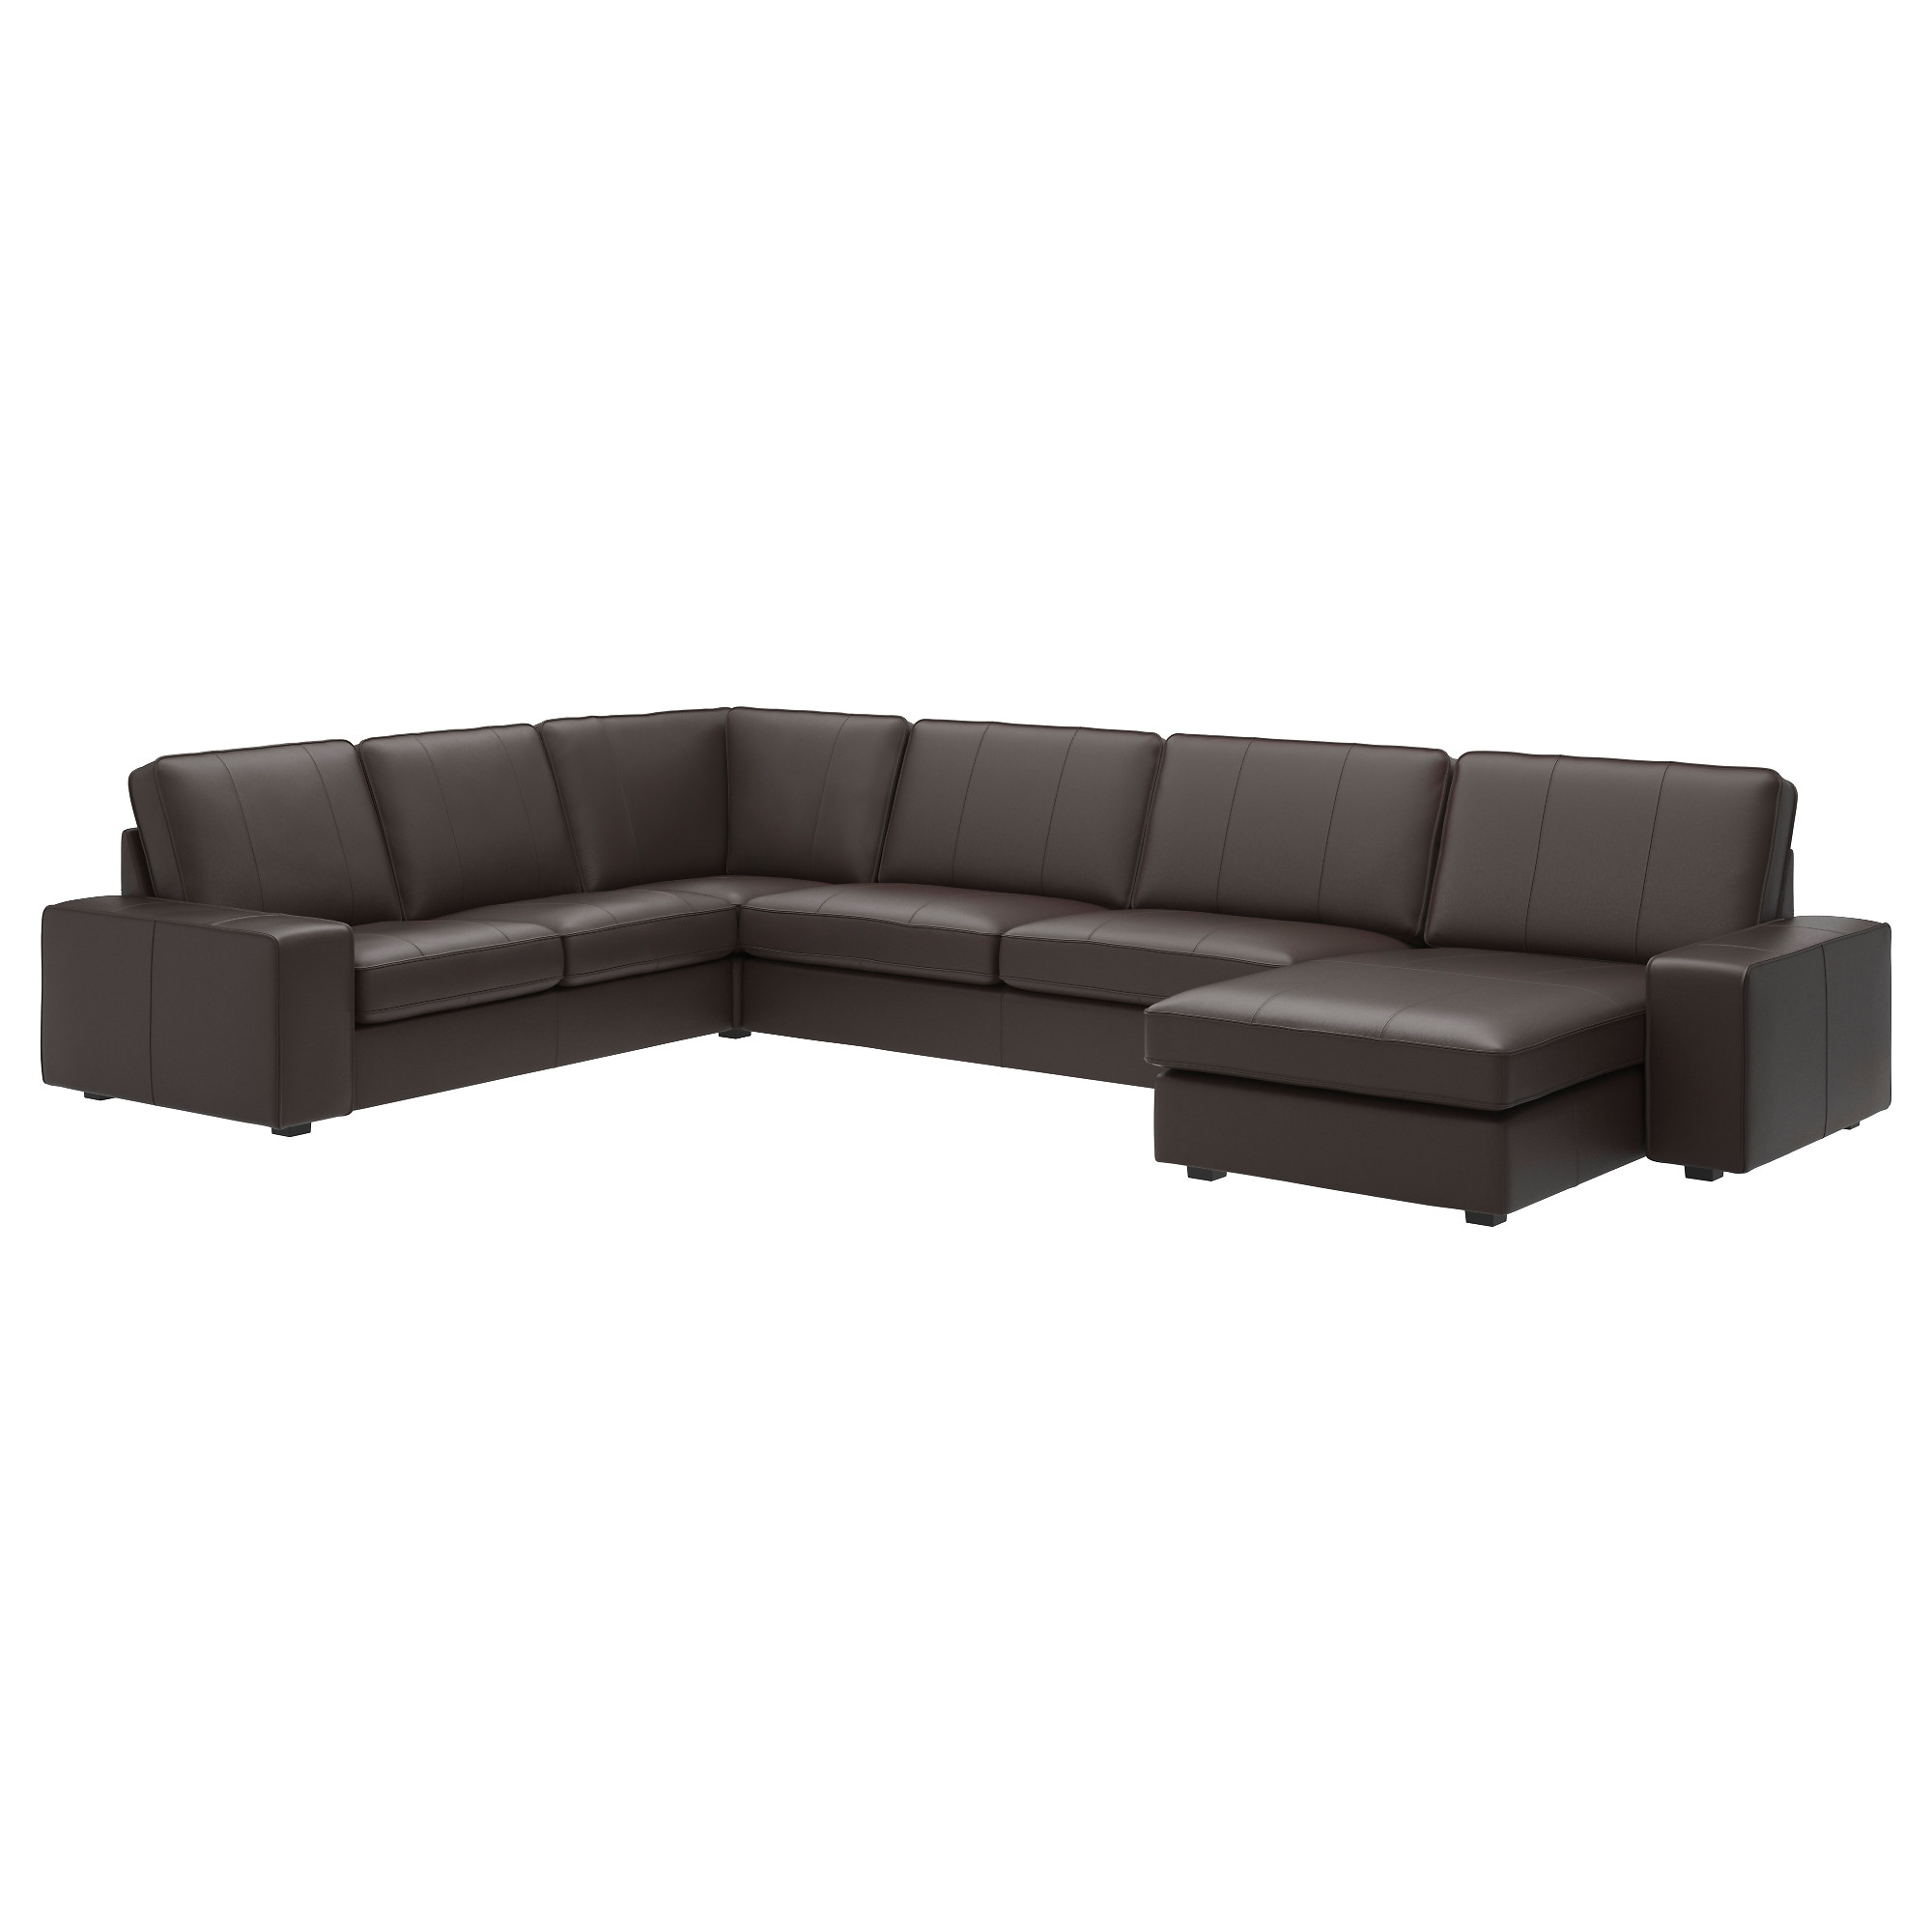 sectional leatherfaux leather sofas  ikea - kivik sectional seat corner grann bomstad dark brown depth chaise